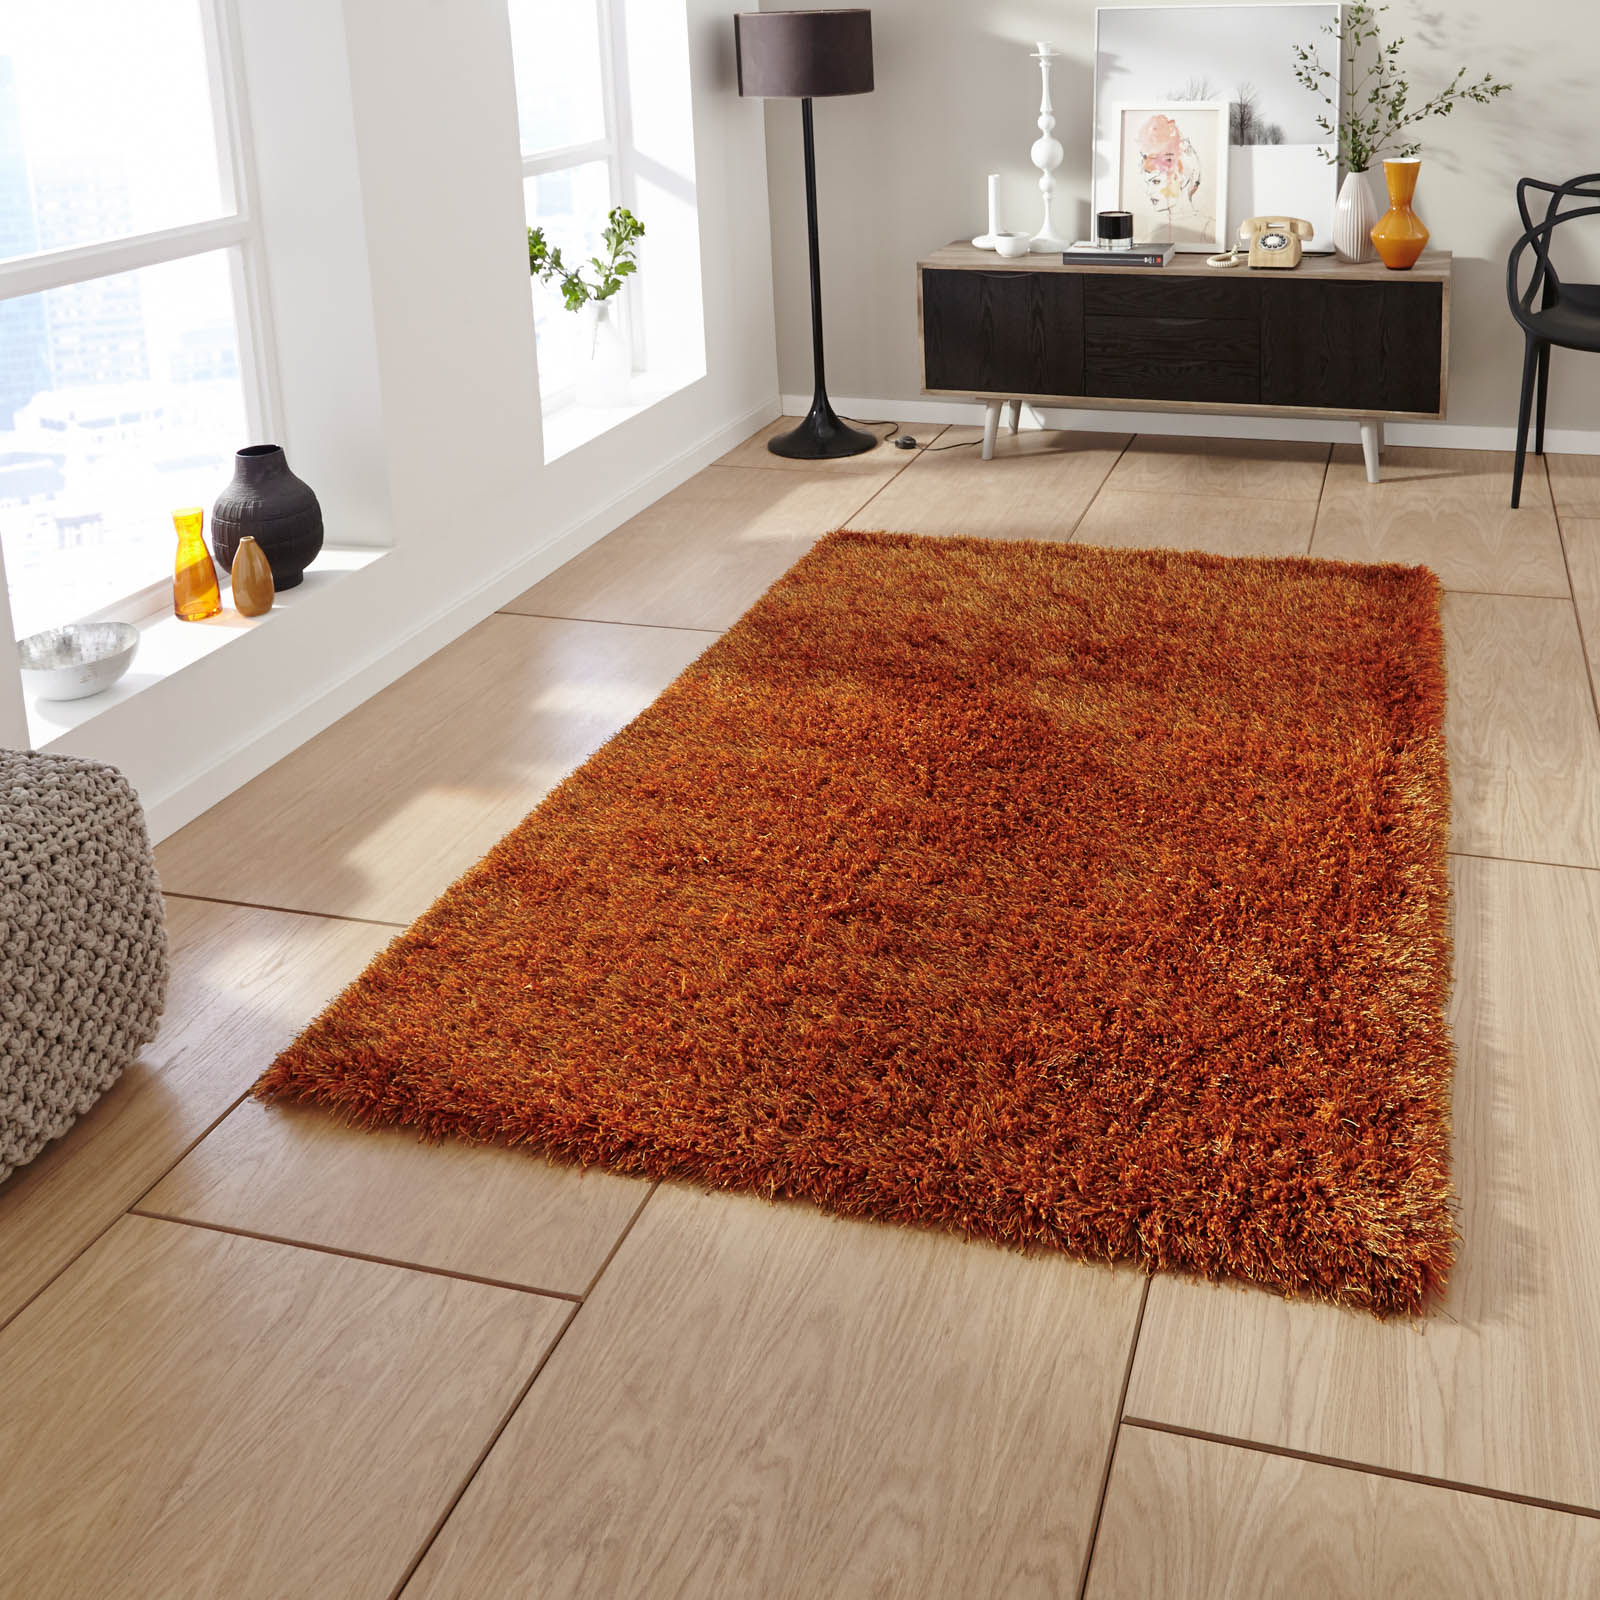 monte carlo hand made shaggy rugs in burnt orange